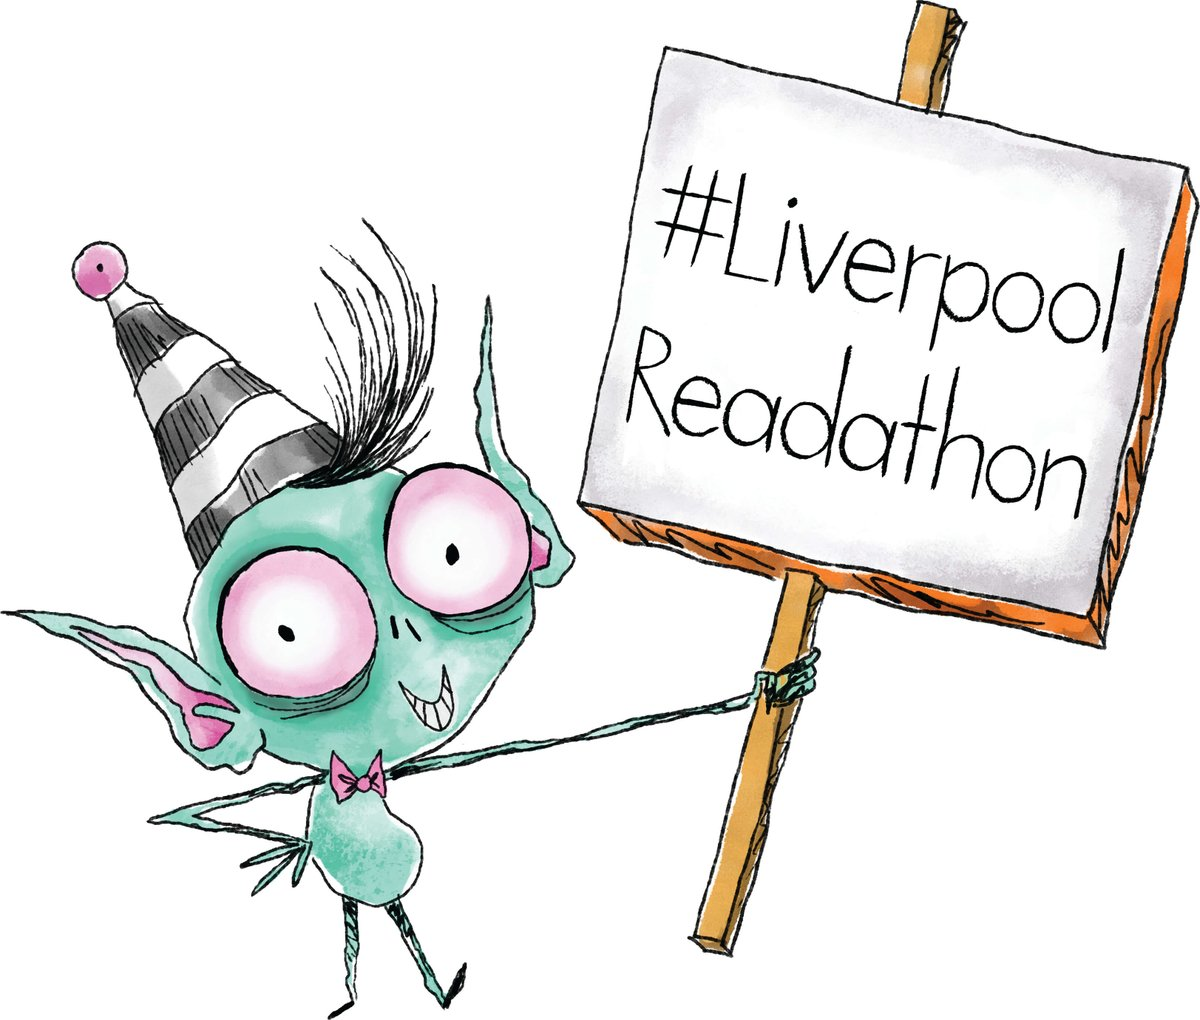 Have you signed up for the #LiverpoolReadathon running from 2-13 March? Schools reading together to raise money to buy books and fund storytellers for children in @AlderHey. readforgood.org/liverpool #LiverpoolReads